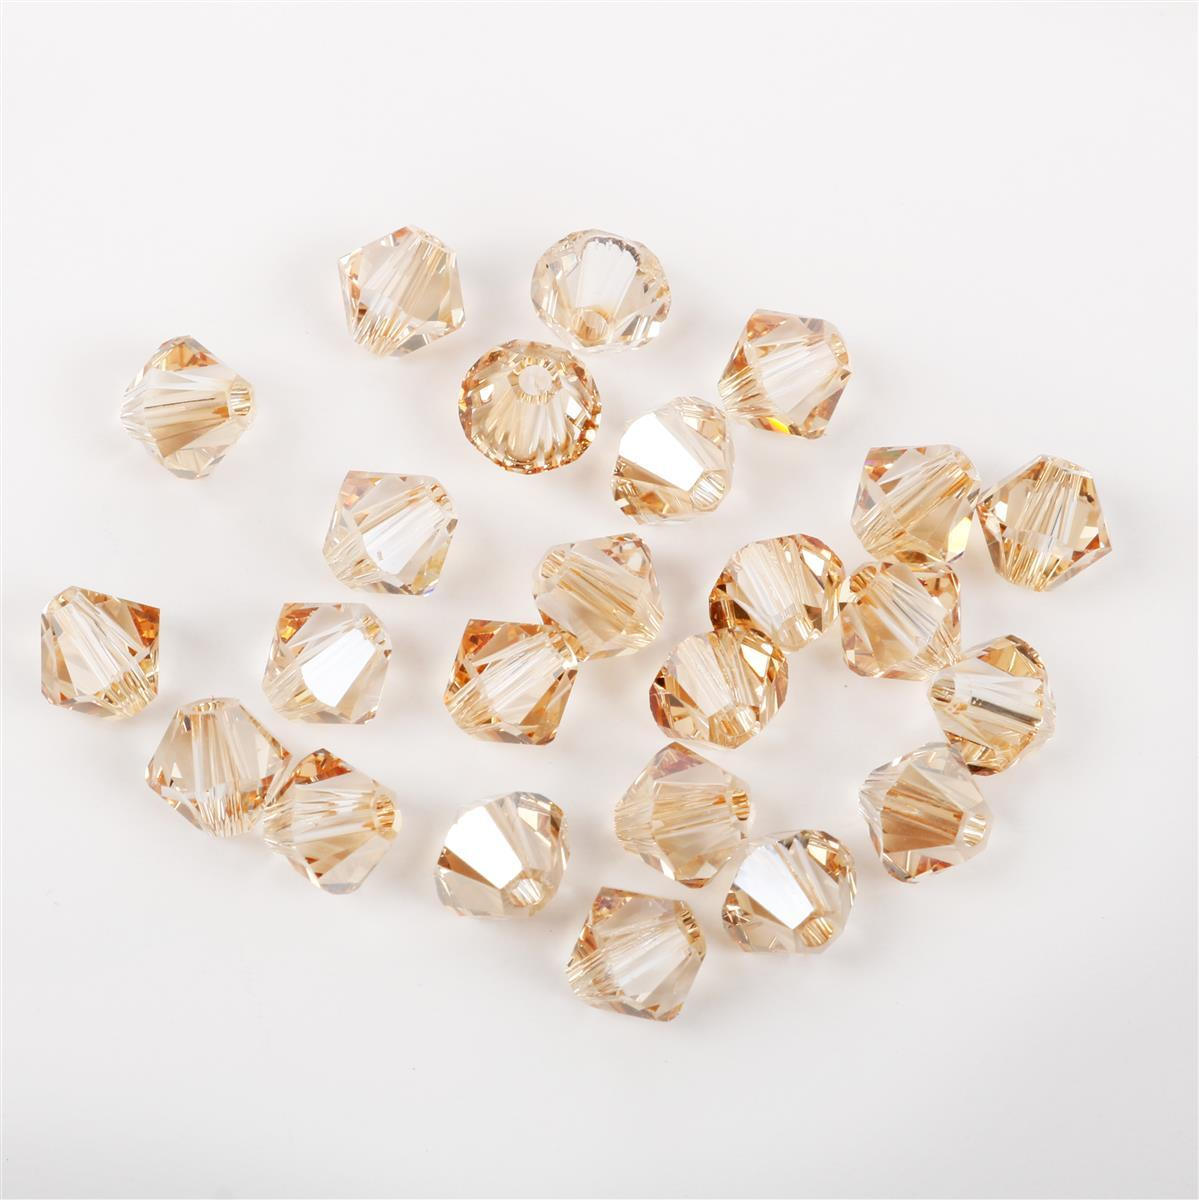 bf2a8e10f Swarovski Crystal Beads - Pack of 24 Bicones 5328 - 4mm Crystal Golden  Shadow | JewelleryMaker.com